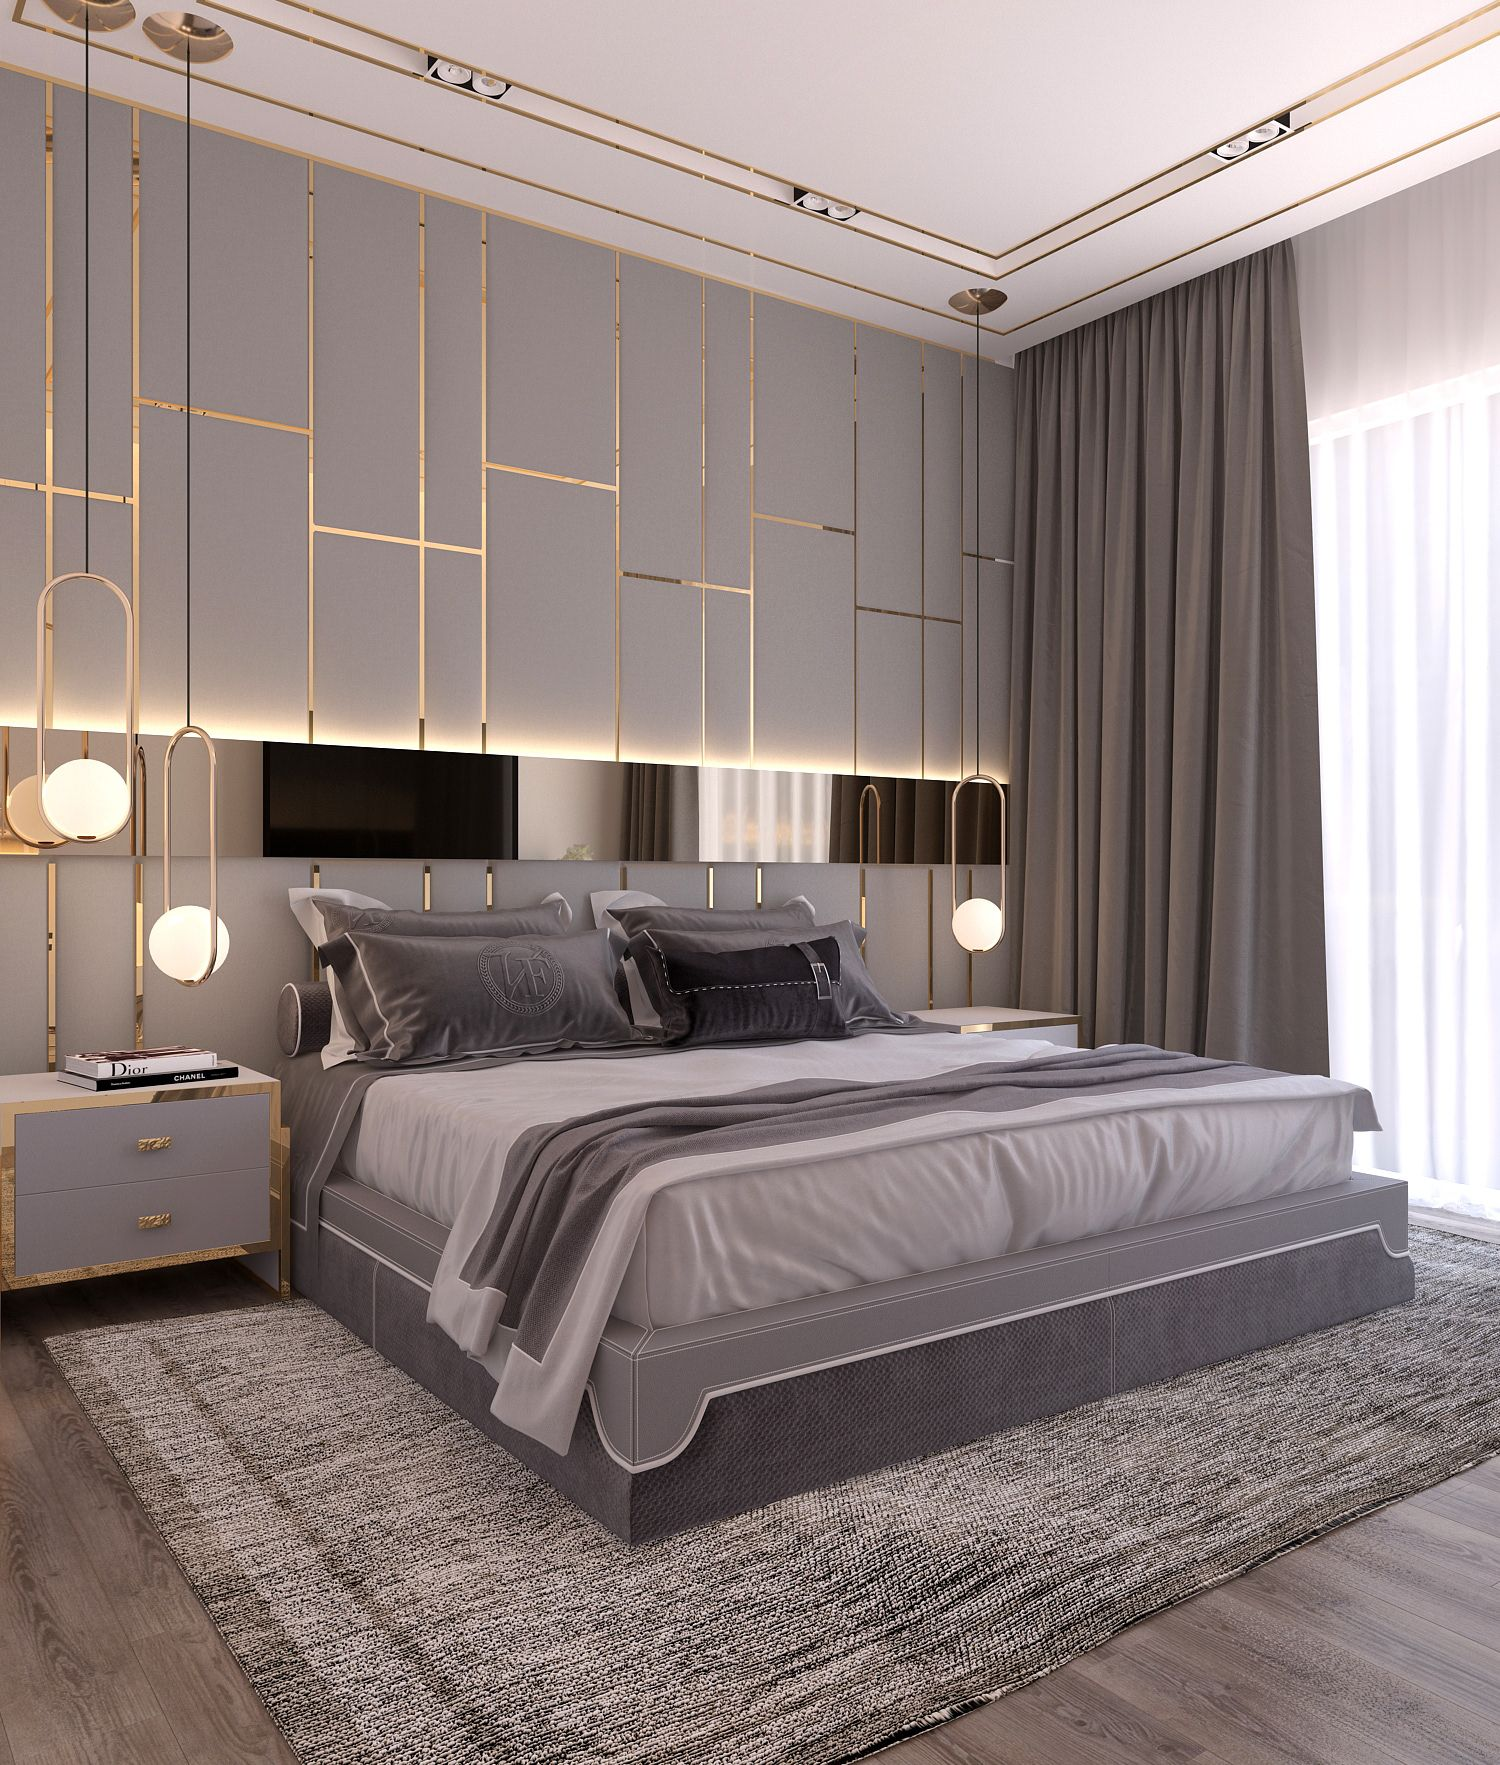 Modern Style Bedroom *Dubai Project On Behance